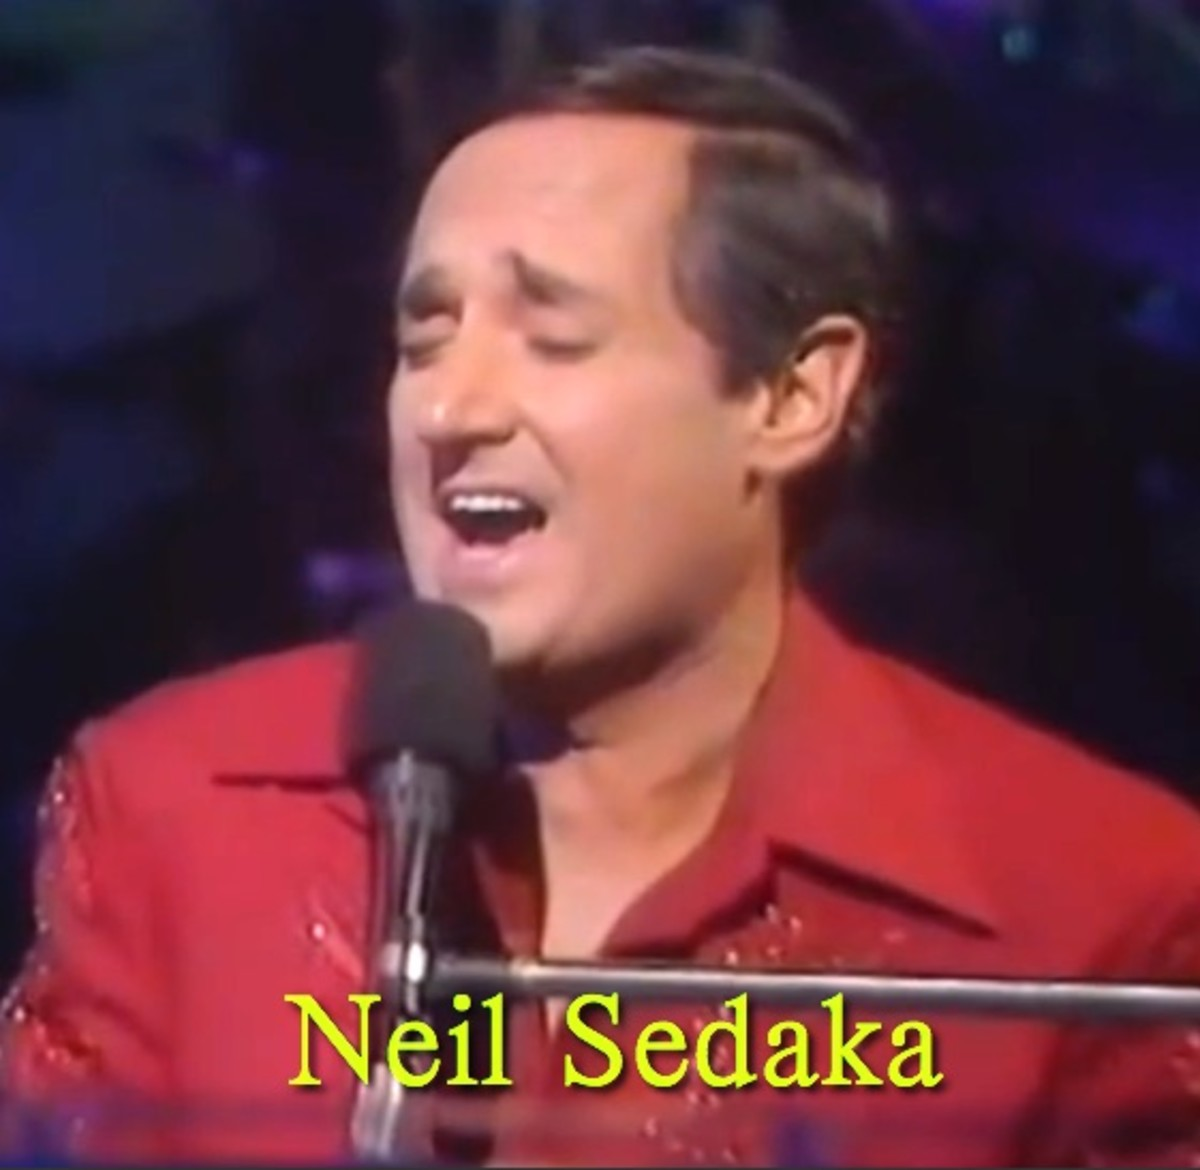 Neil Sedaka: His Life from Dating Carole King to Writing Children's Songs